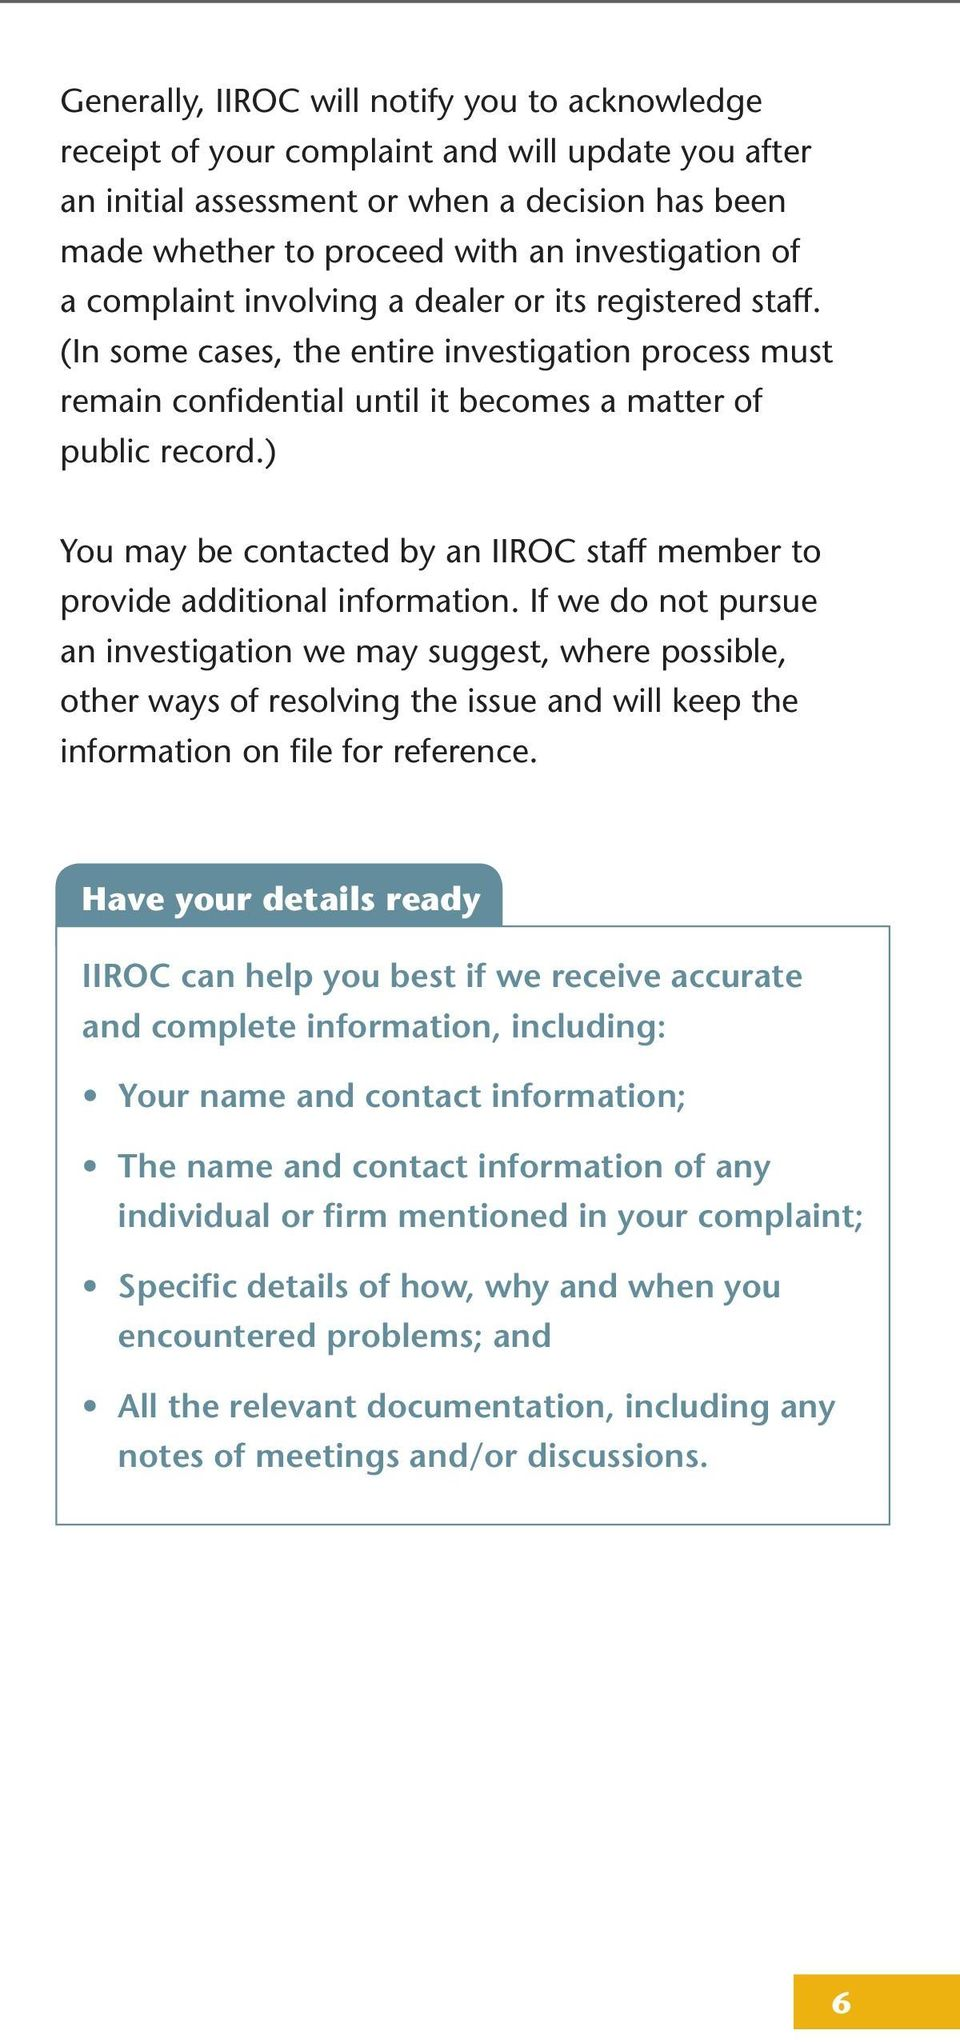 ) You may be contacted by an IIROC staff member to provide additional information.